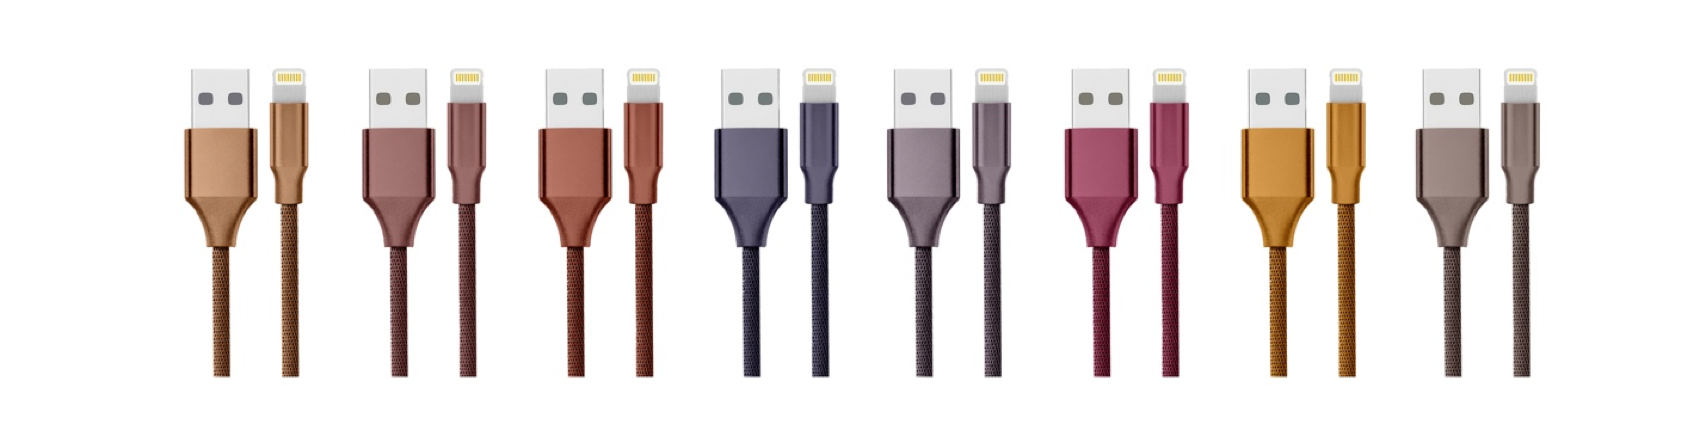 Techmer PM USB product color design